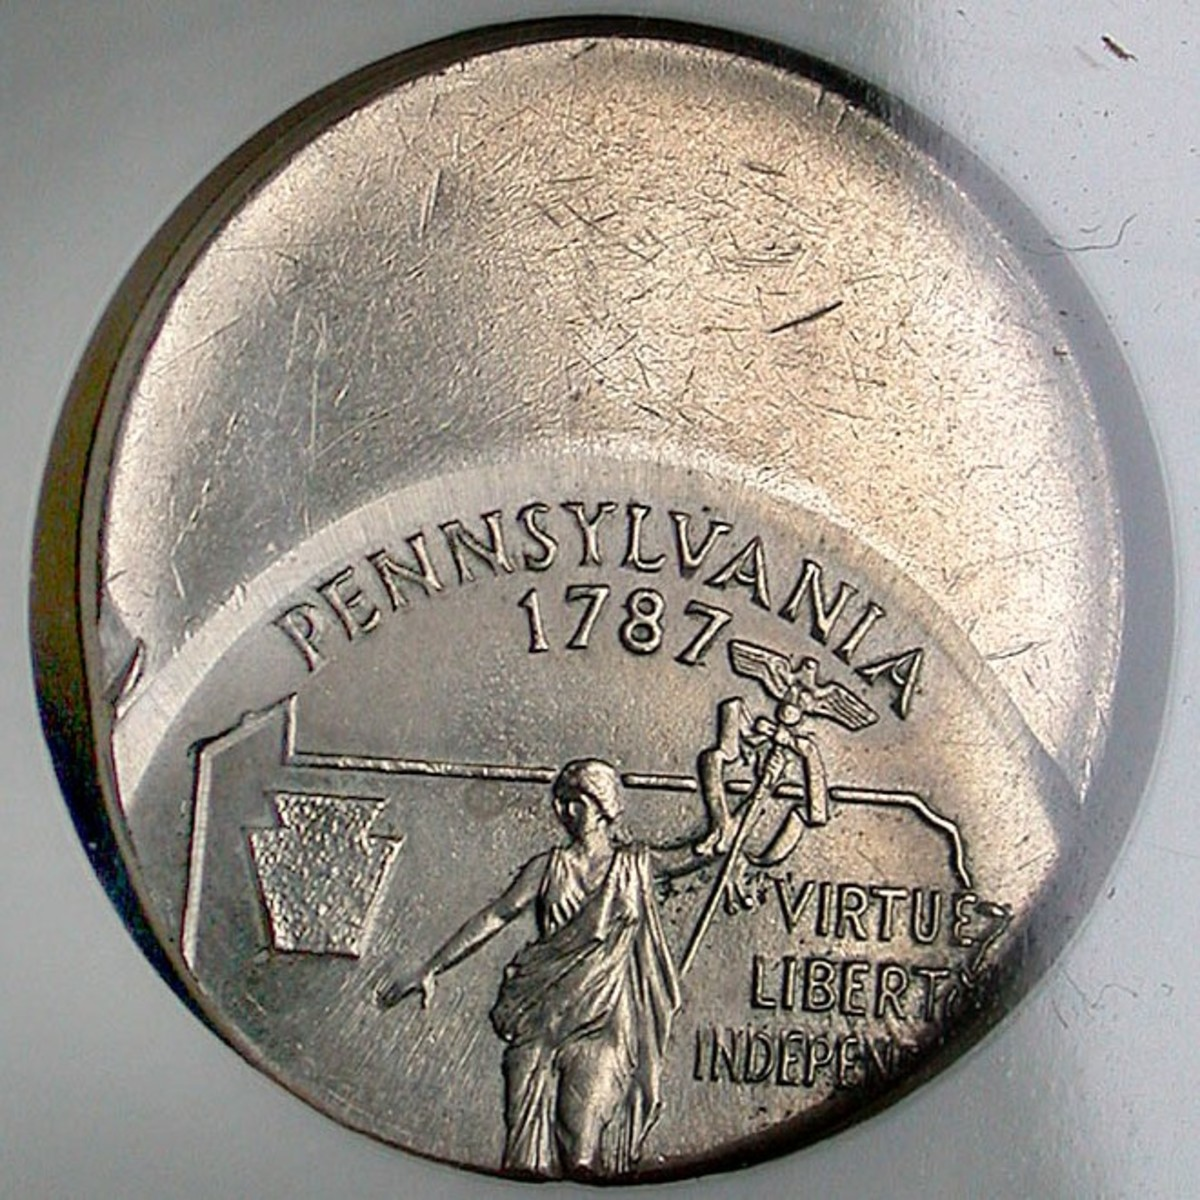 1999 Pennsylvania Off Center Strike. Photo Courtesy: coinpage.com